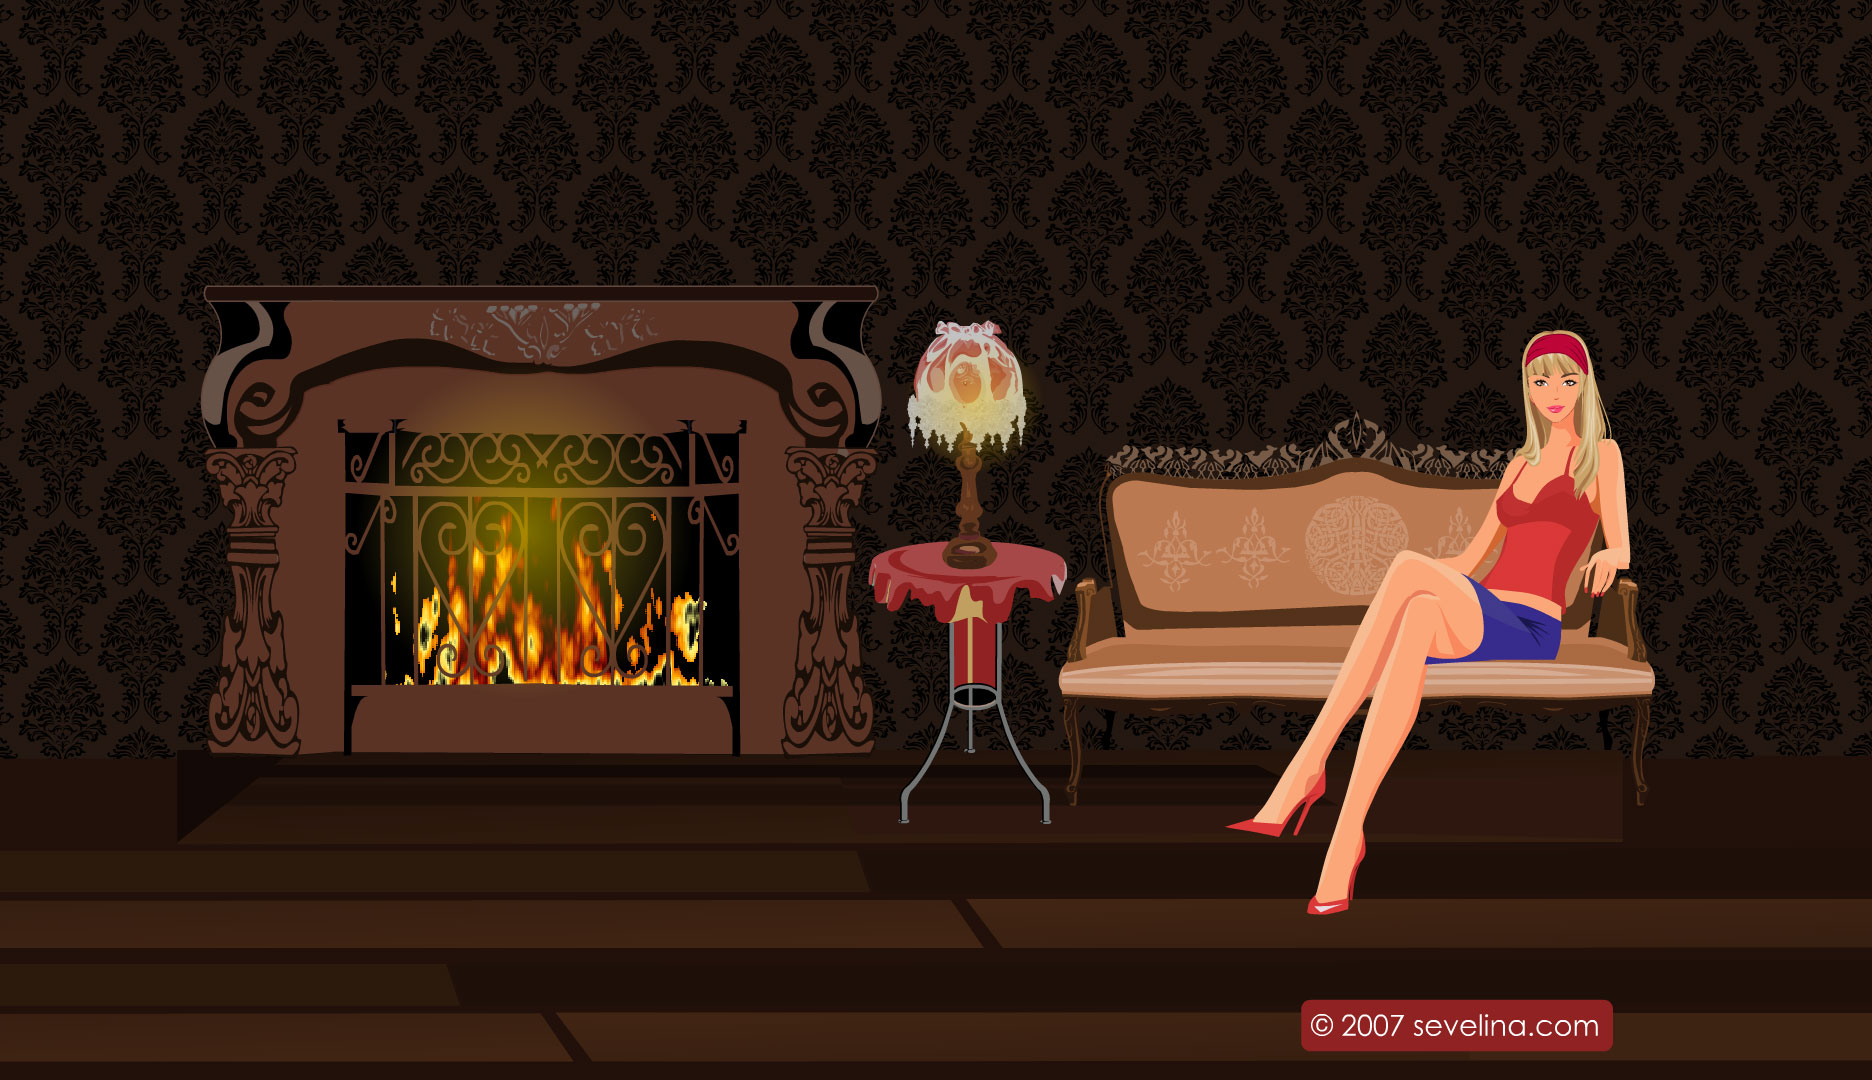 screensaver stay relax at fireplace o sevelina games for girls o